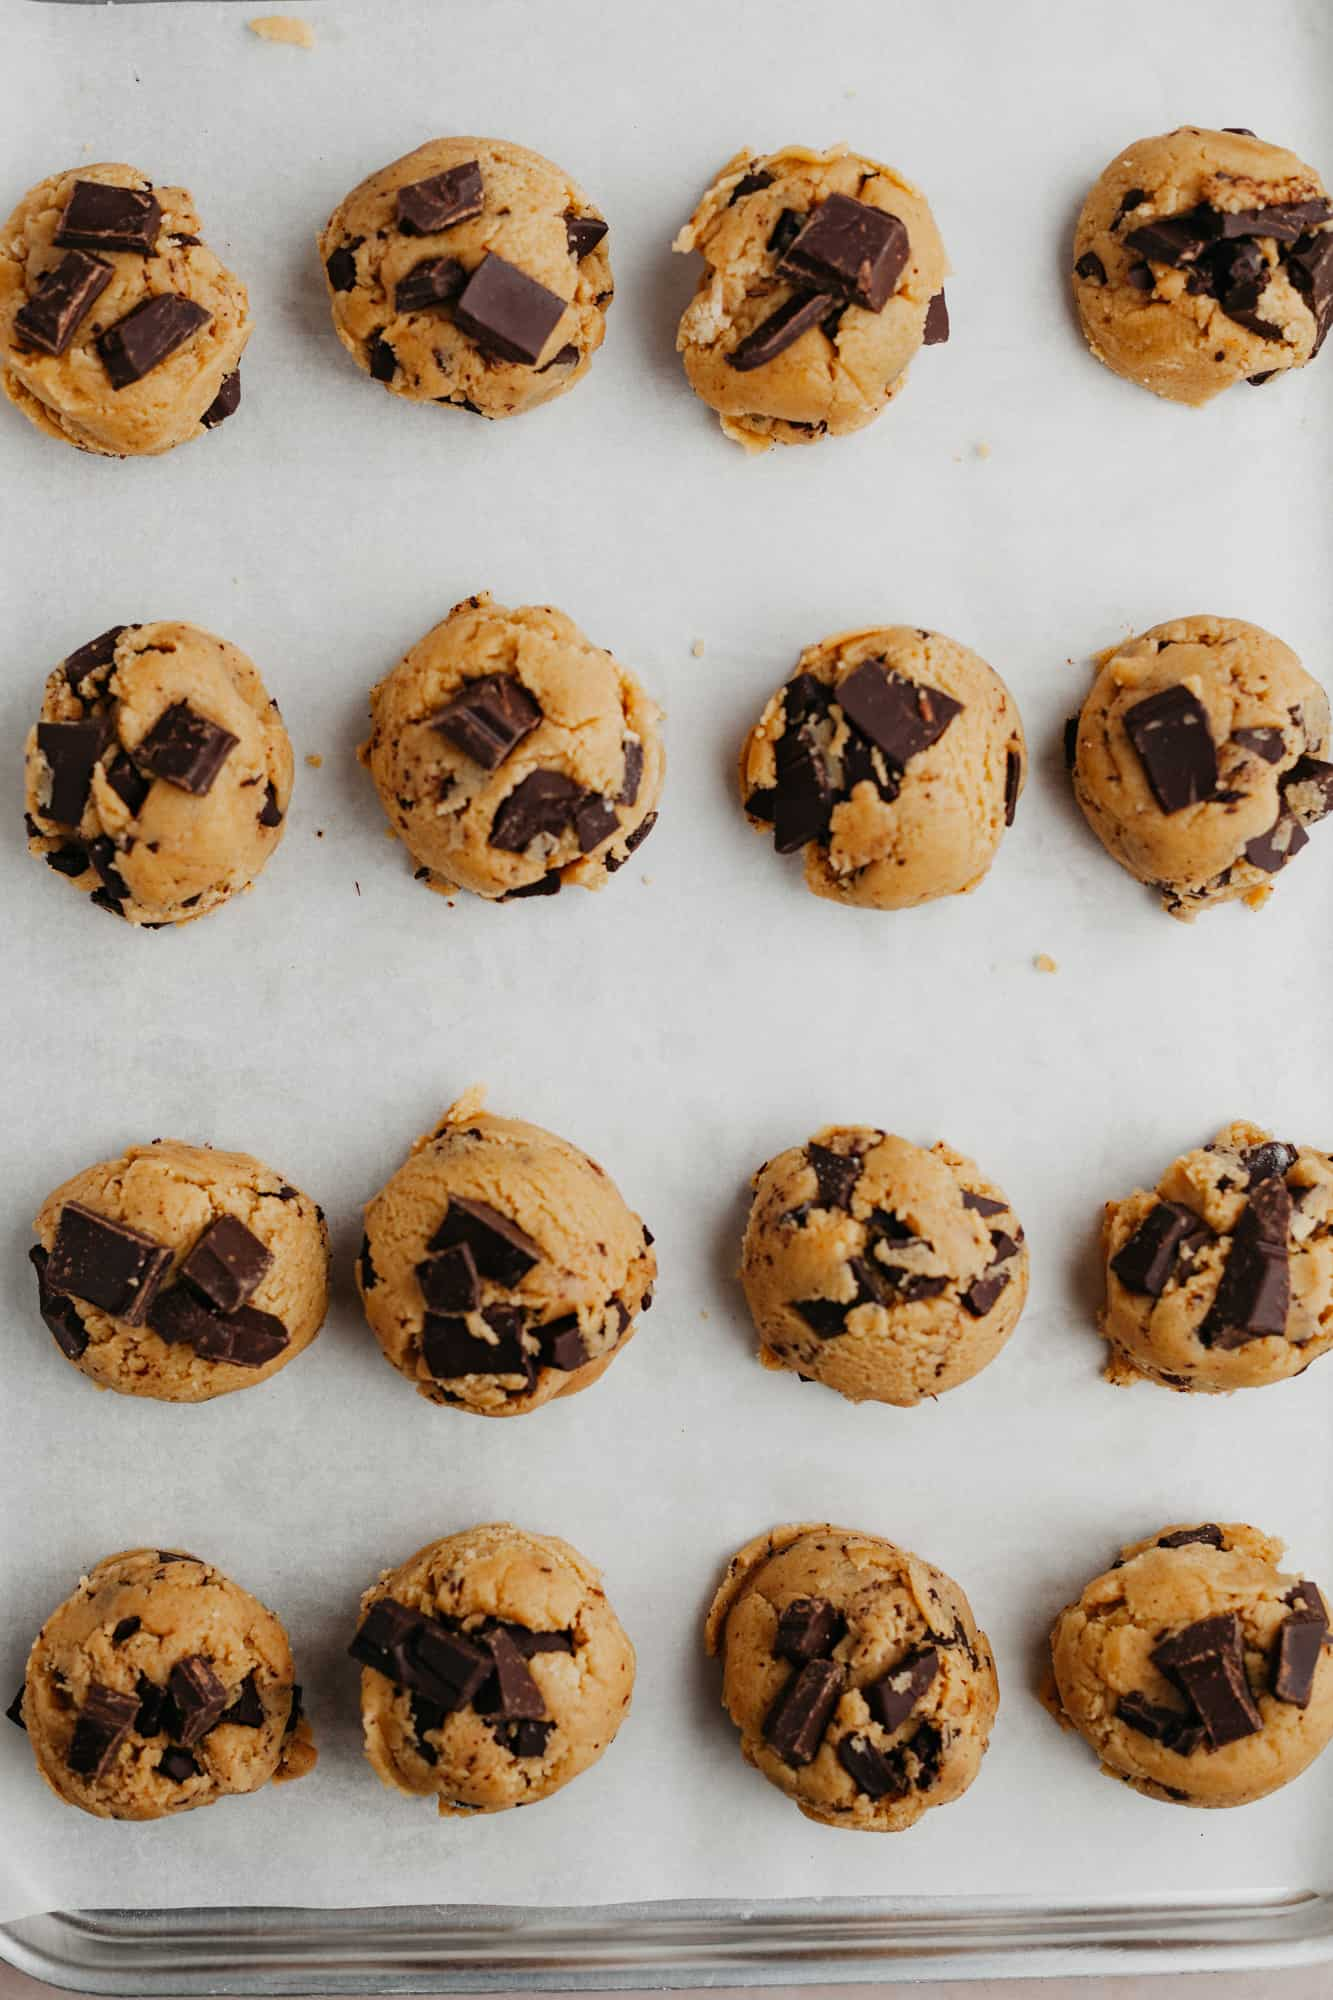 Unbaked cookie dough that has been scooped on to parchment paper